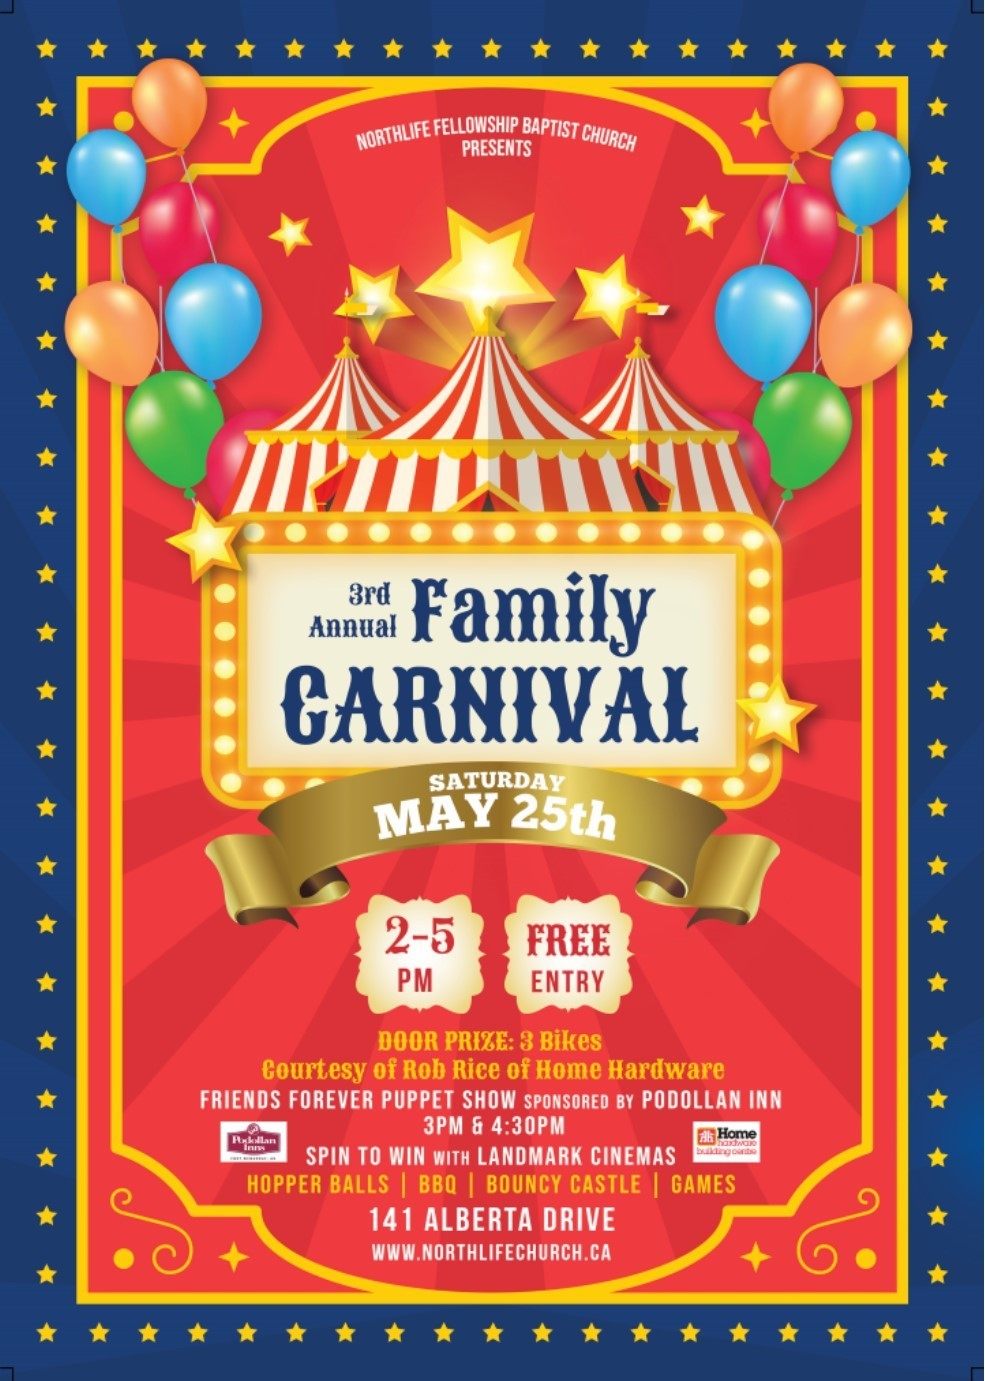 3rd Annual Family Carnival @ Northlife Fellowship Baptist Church | Fort McMurray | Alberta | Canada